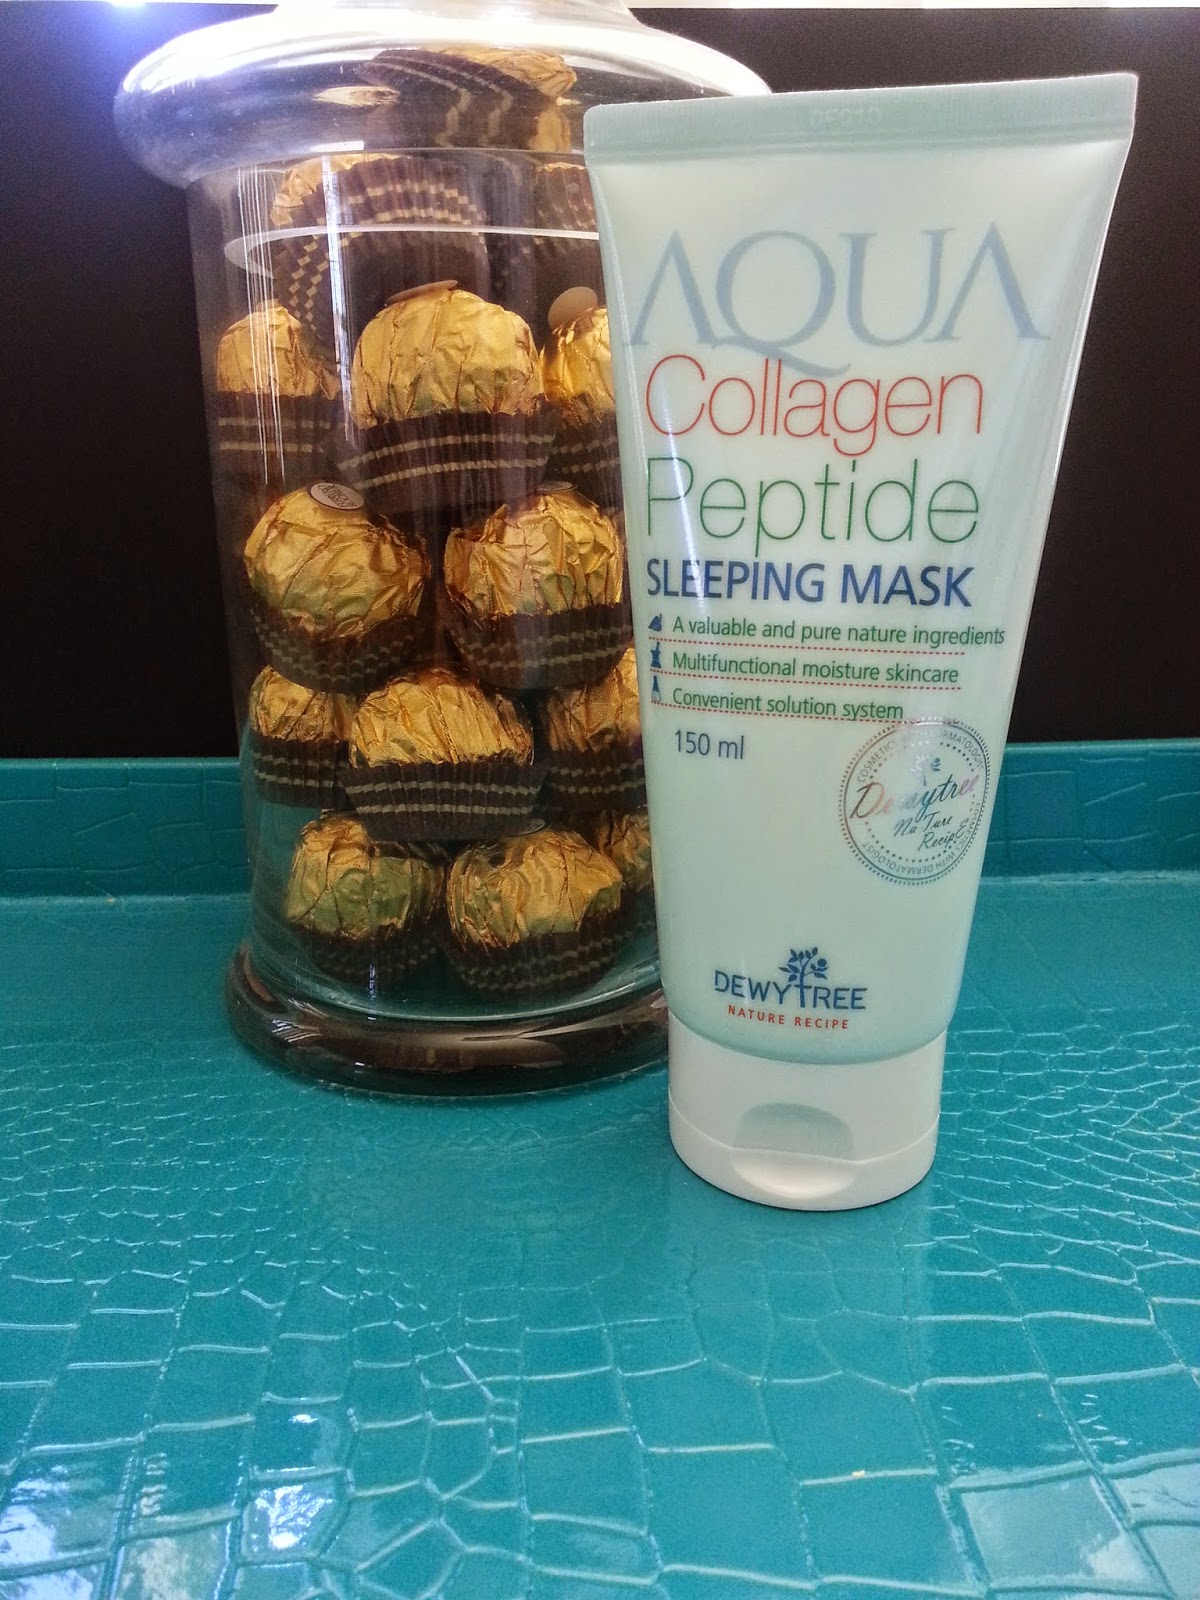 Dewytree Aqua Collagen Peptide Sleeping Mask